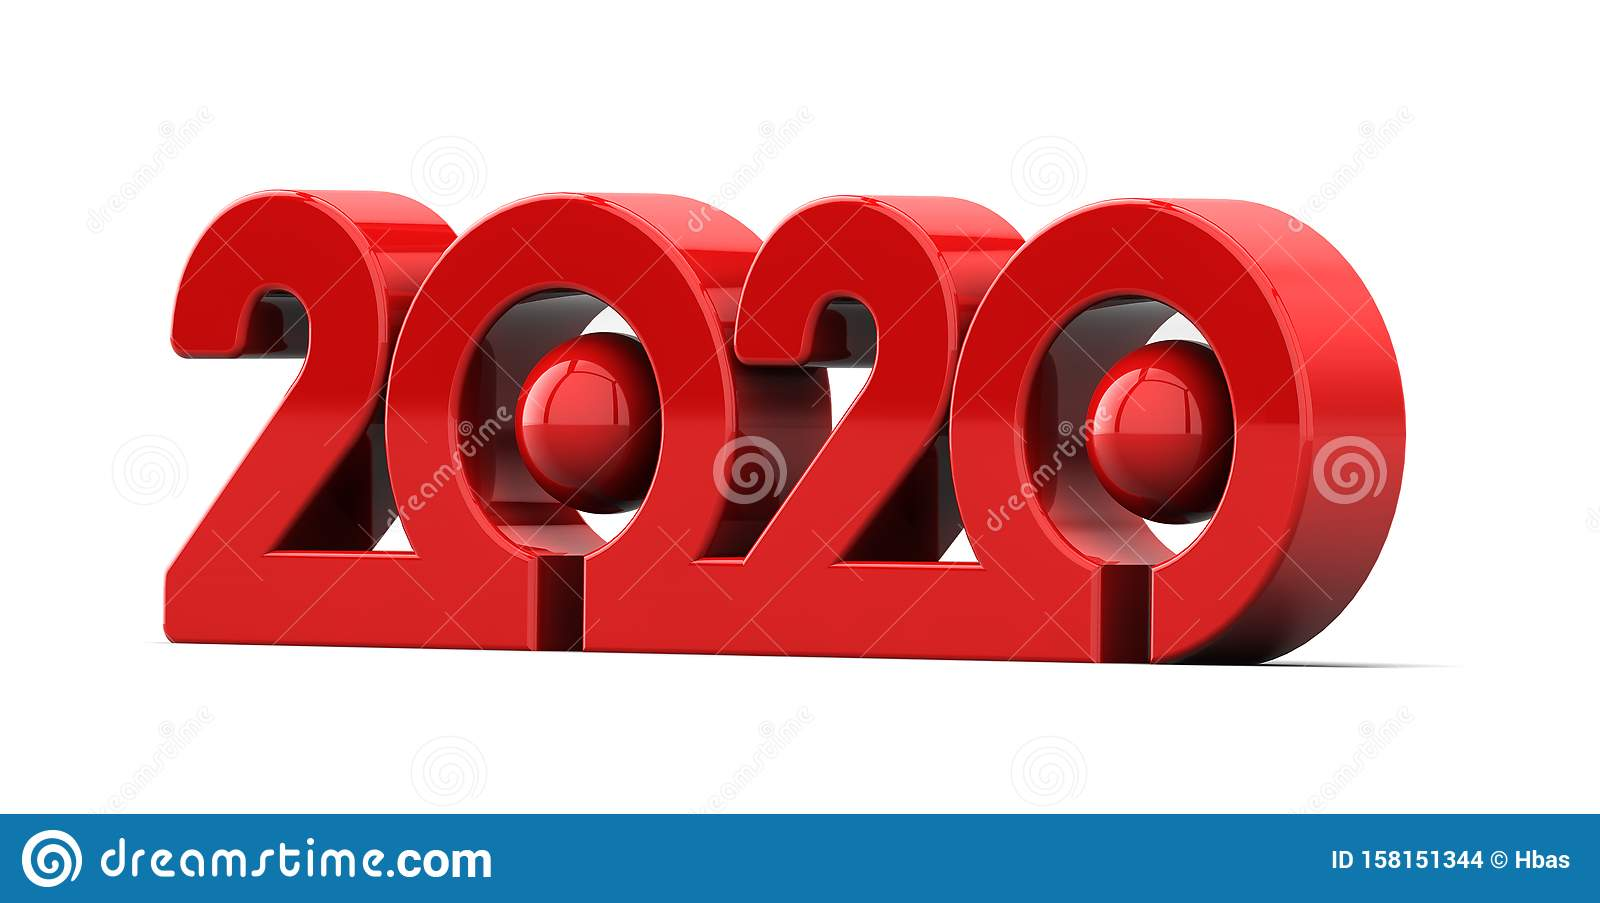 Happy New Year 2020 3d Images Free Download Happy New Year